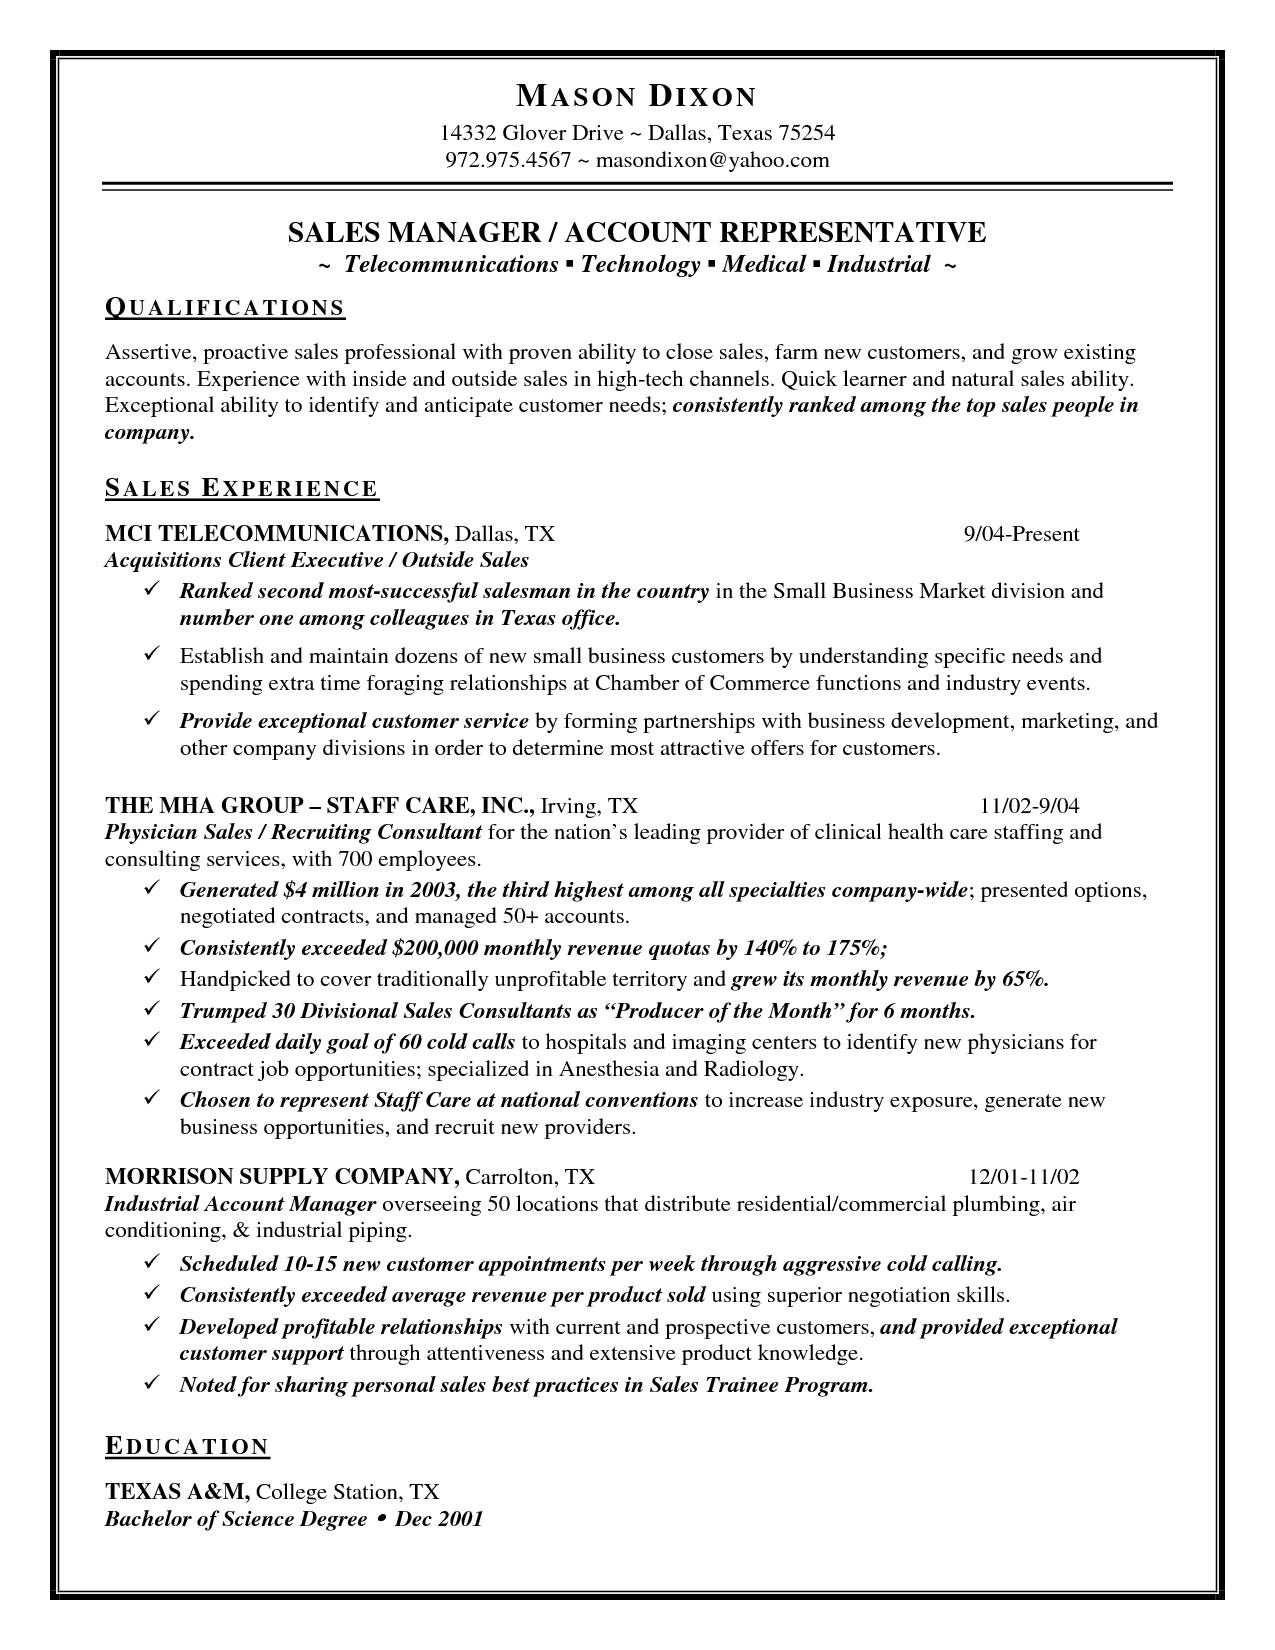 quick learner resume inside sales resume sample mason dixon 14332